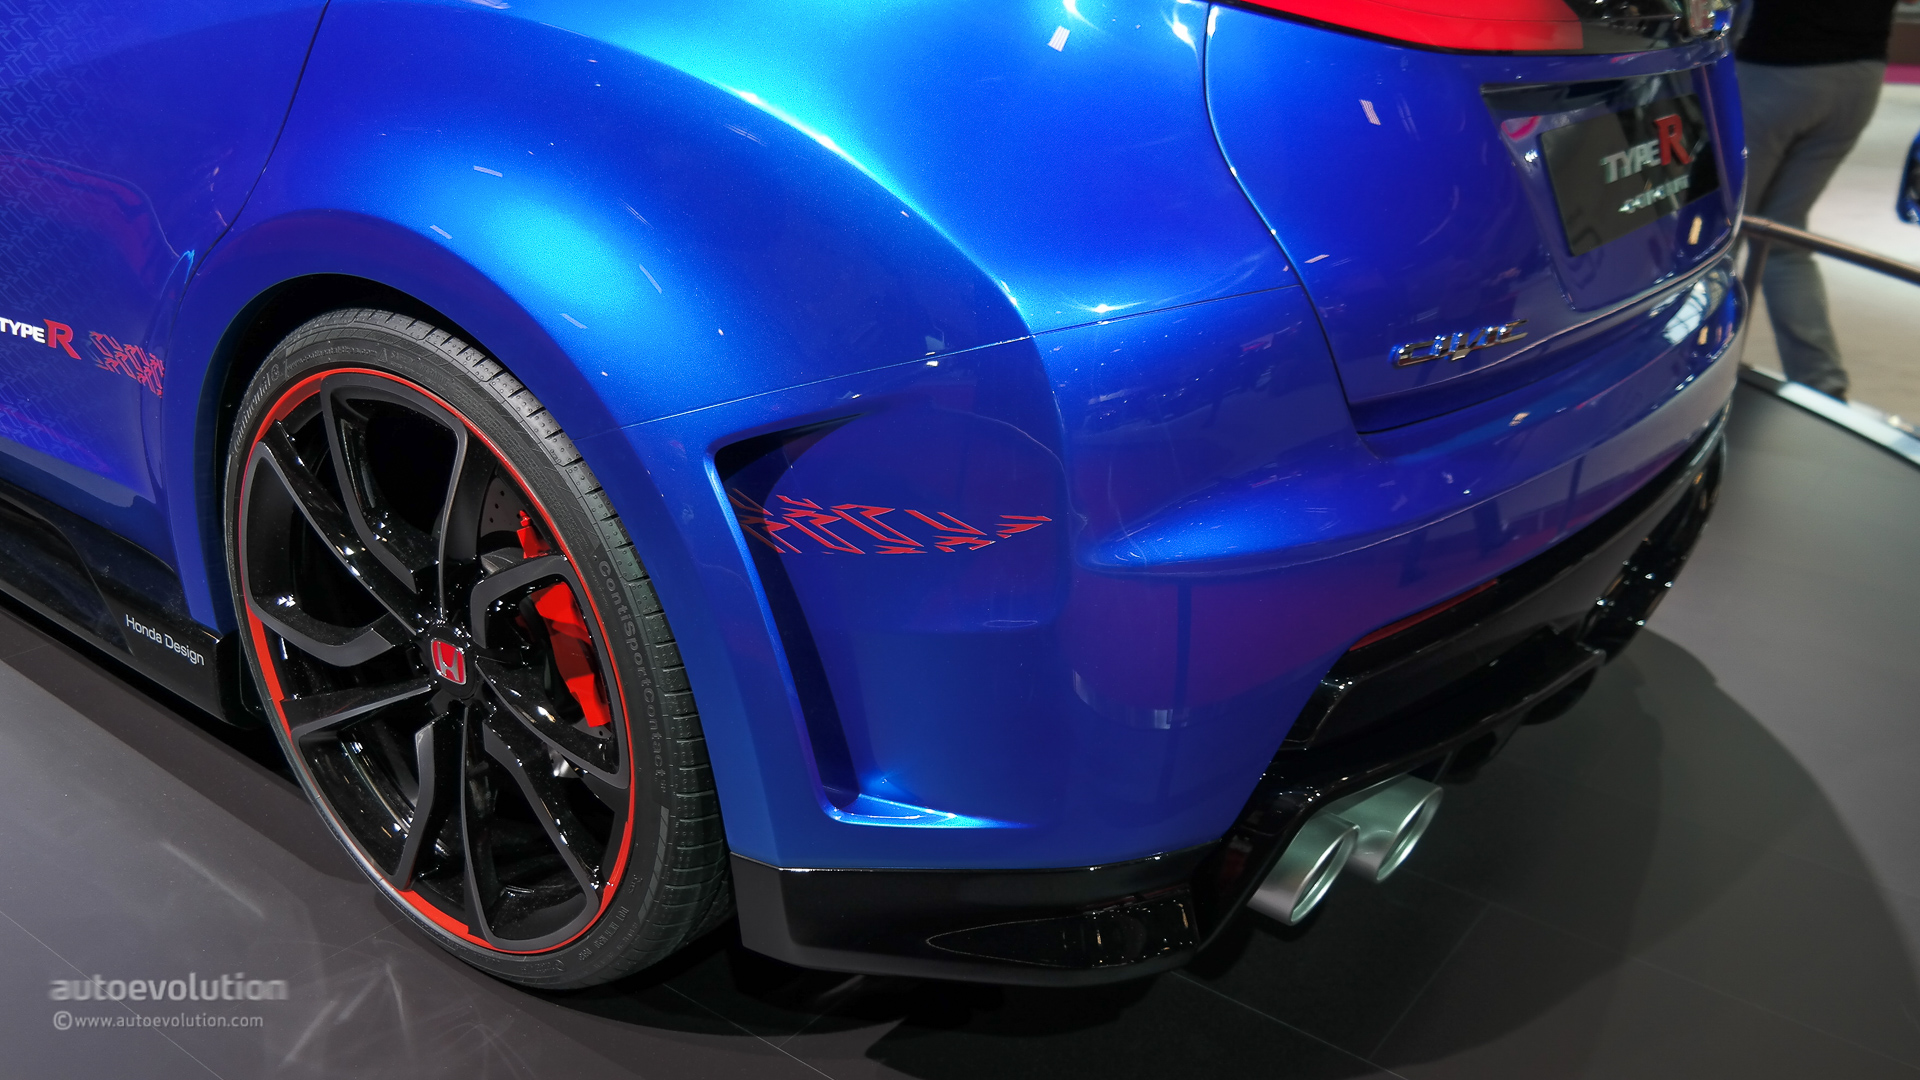 Honda Civic Type R Hot Hatch Confirmed For Australia